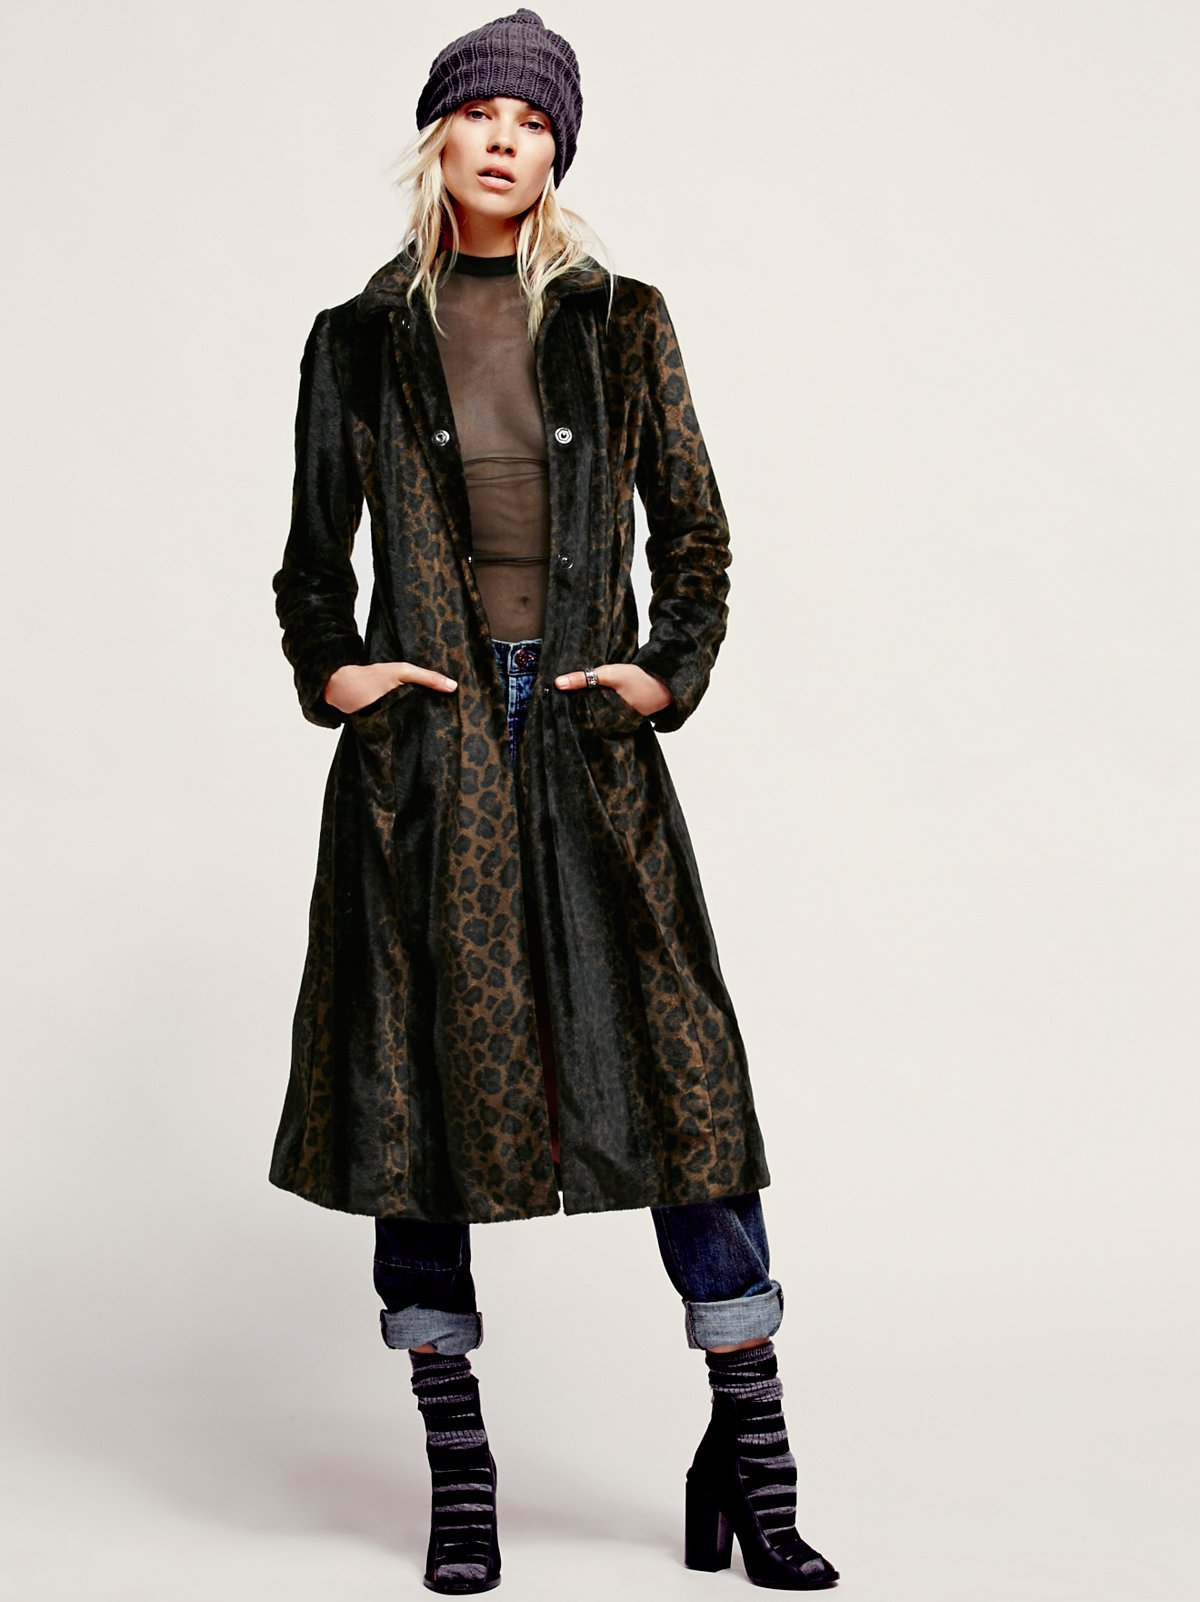 Leaping Leopard Coat